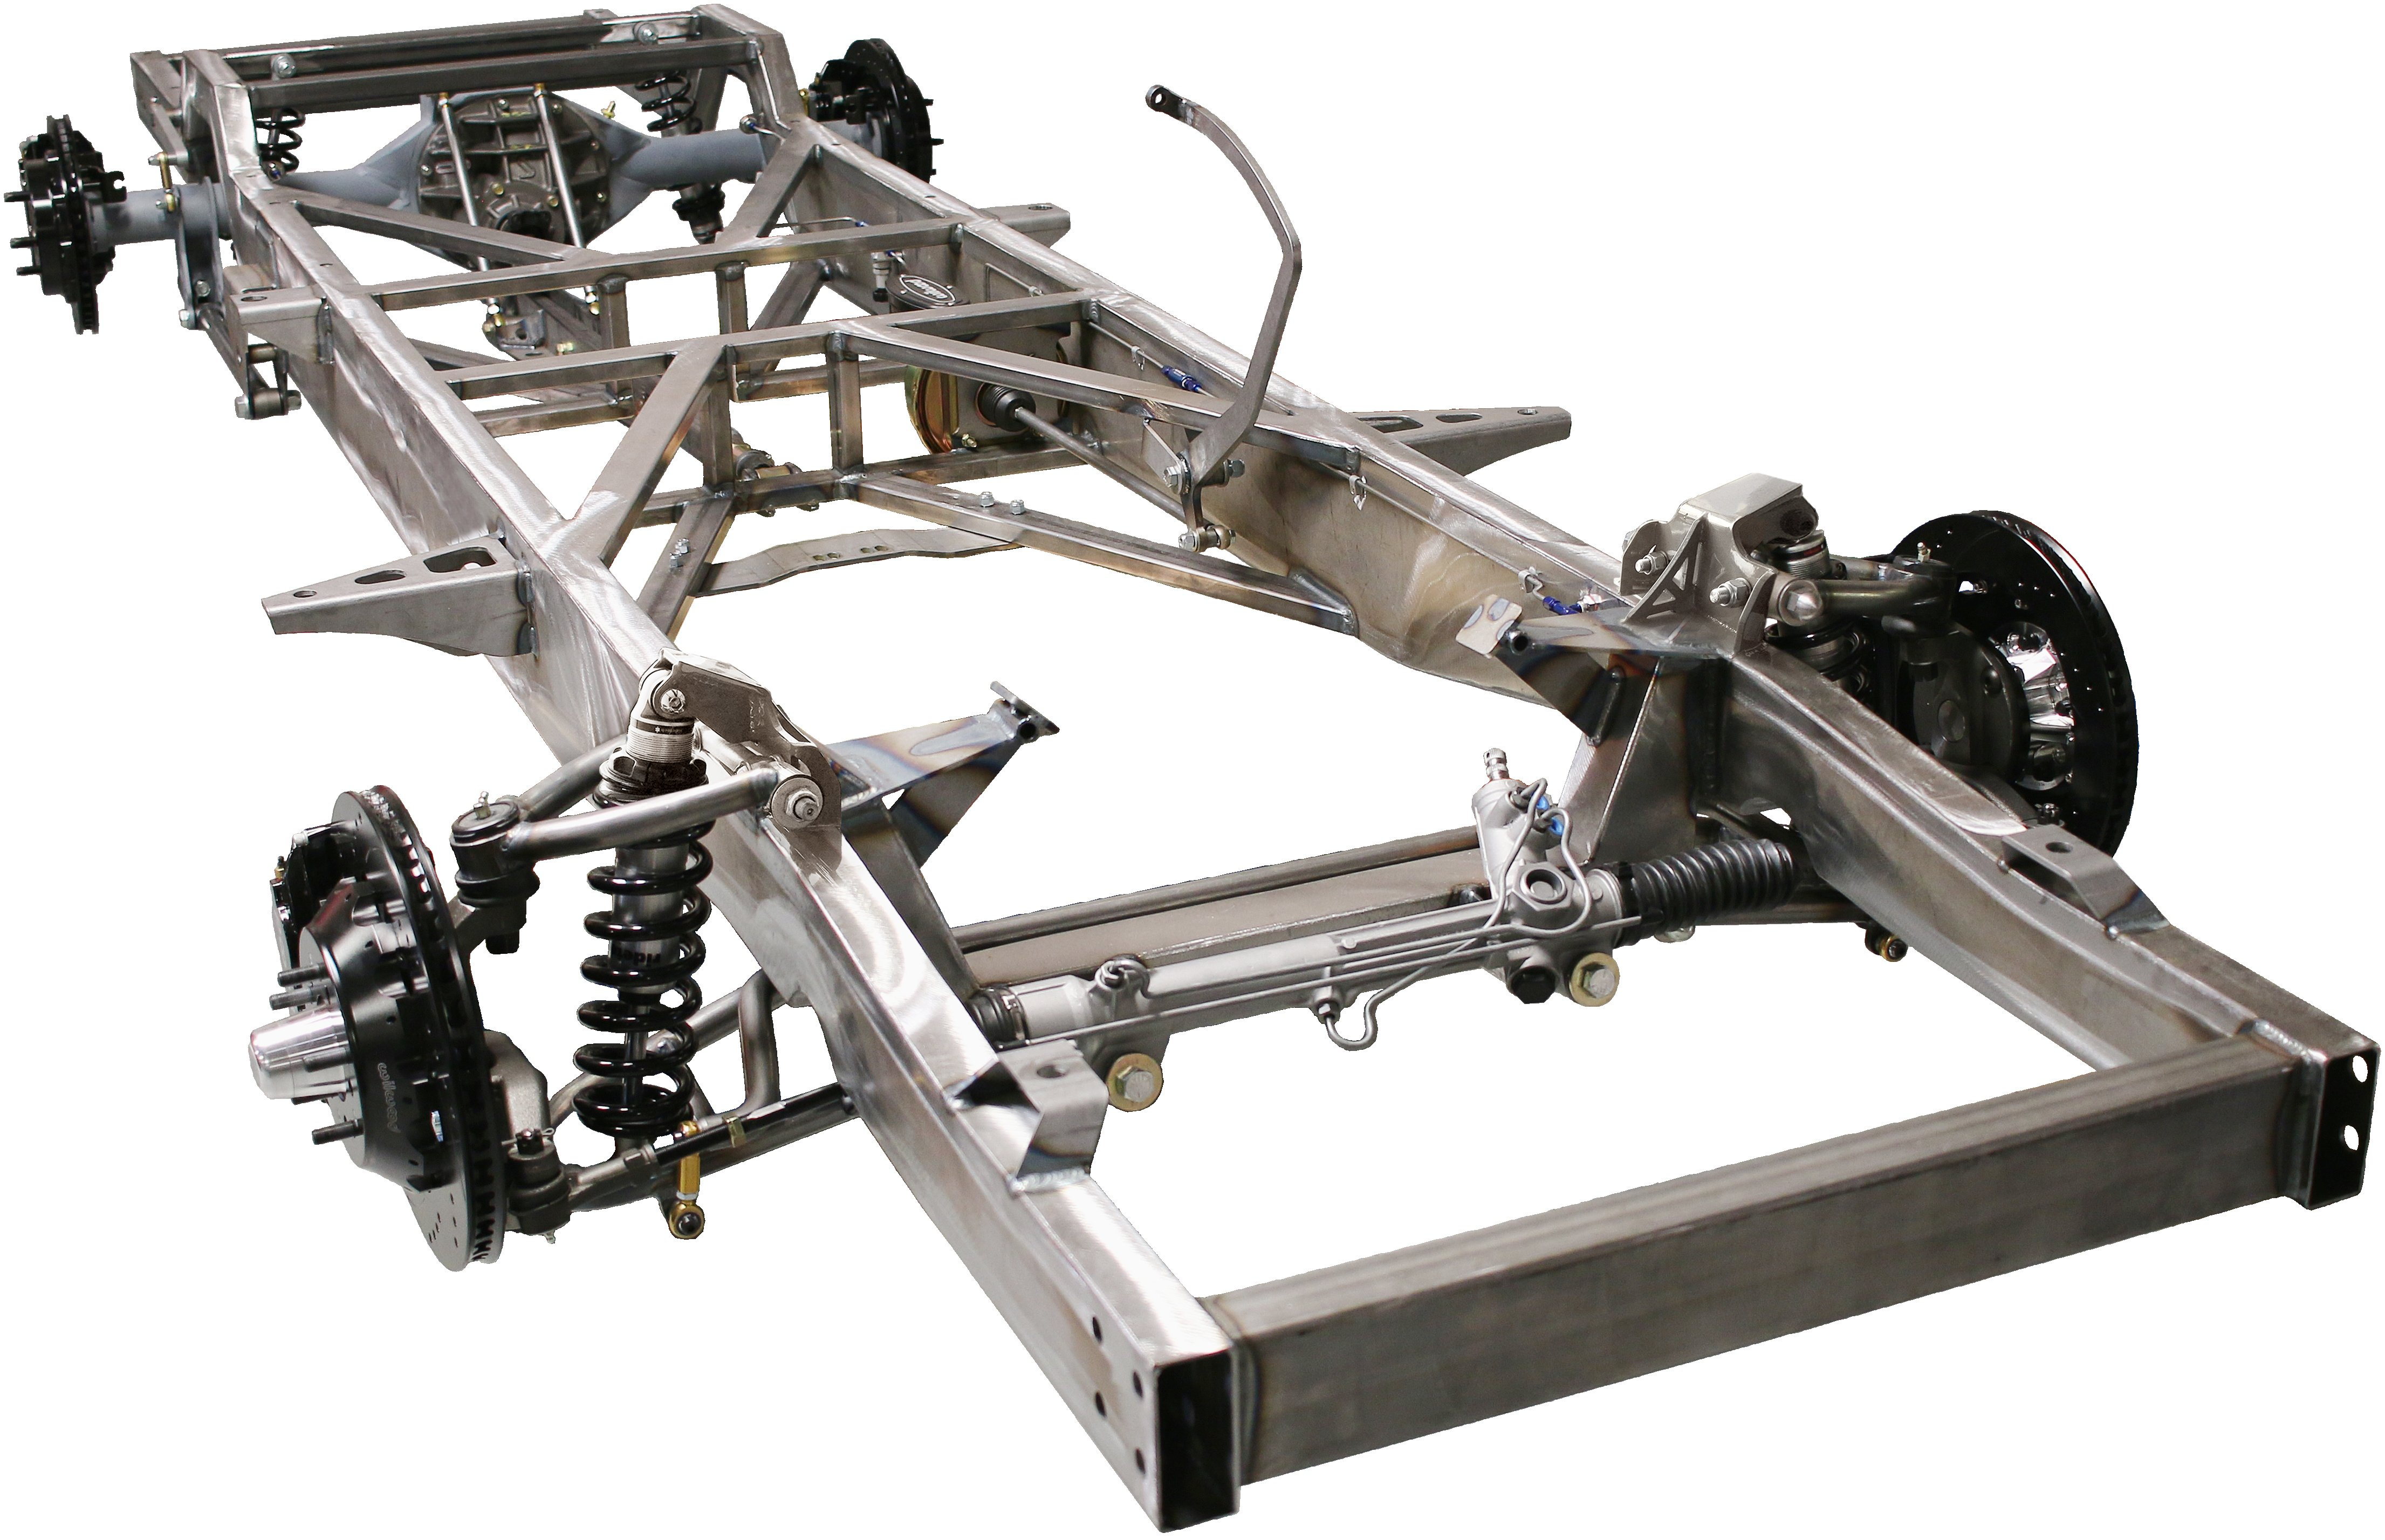 Street Rod Chassis Guide: TCI Engineering Ford Chassis Offerings